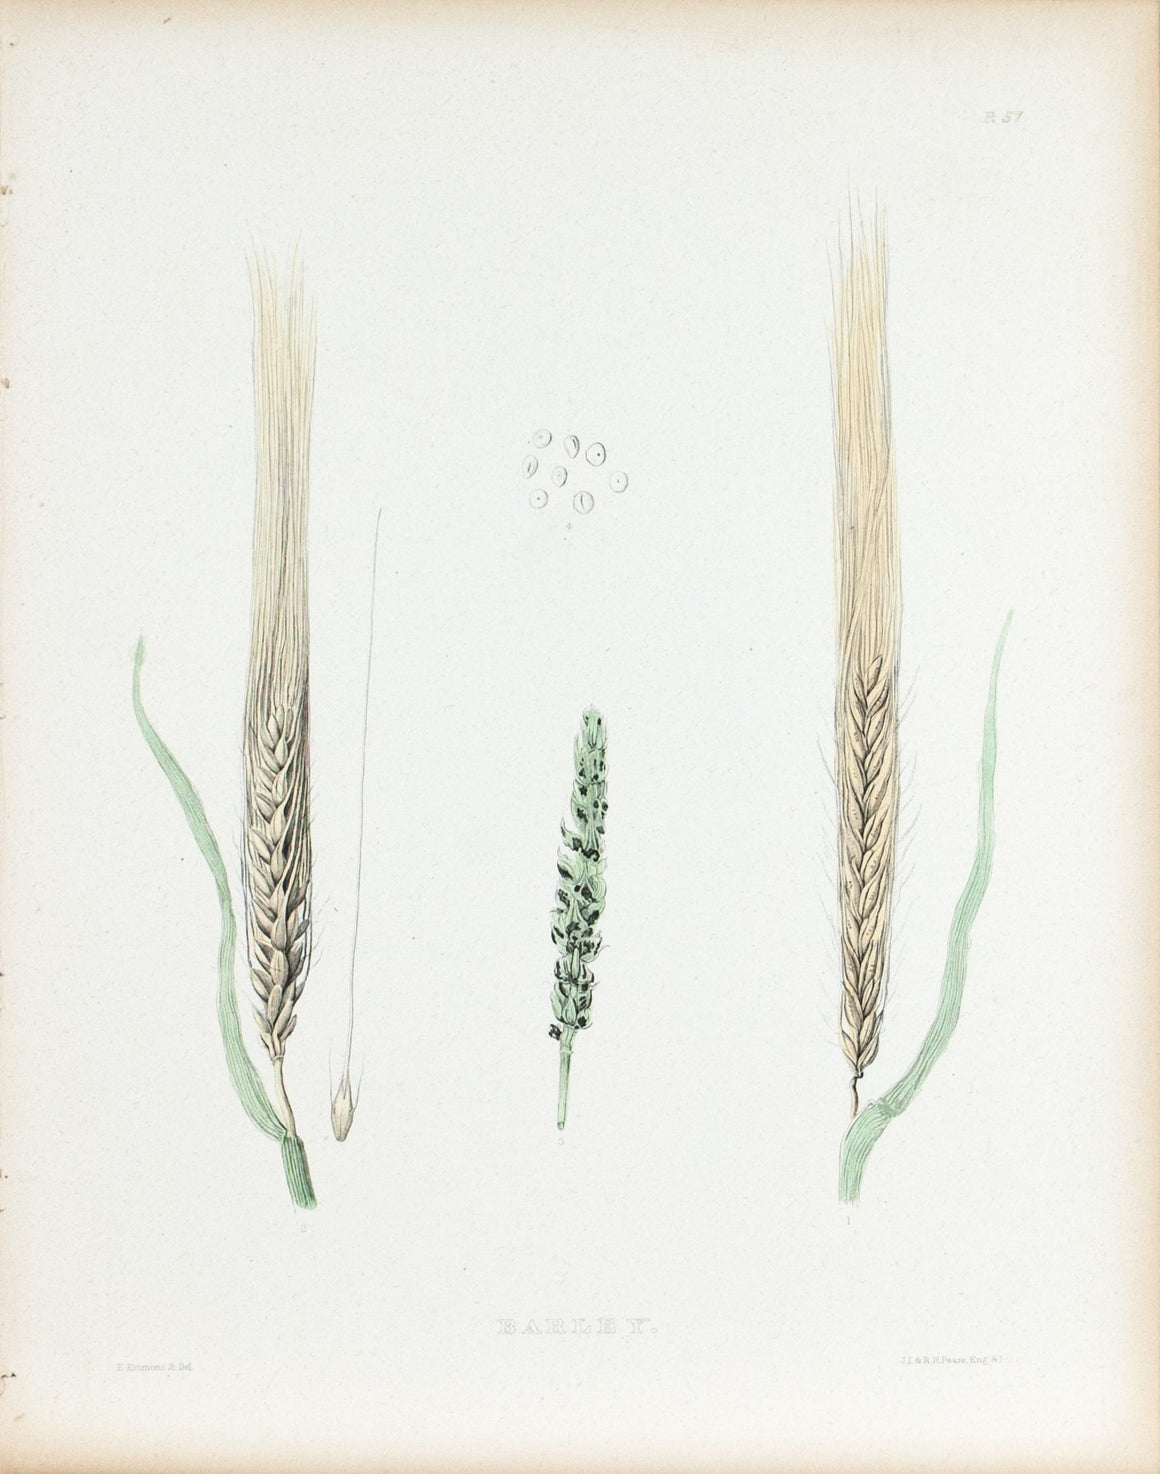 1849 Pl 57 Varieties of Barley - Emmons